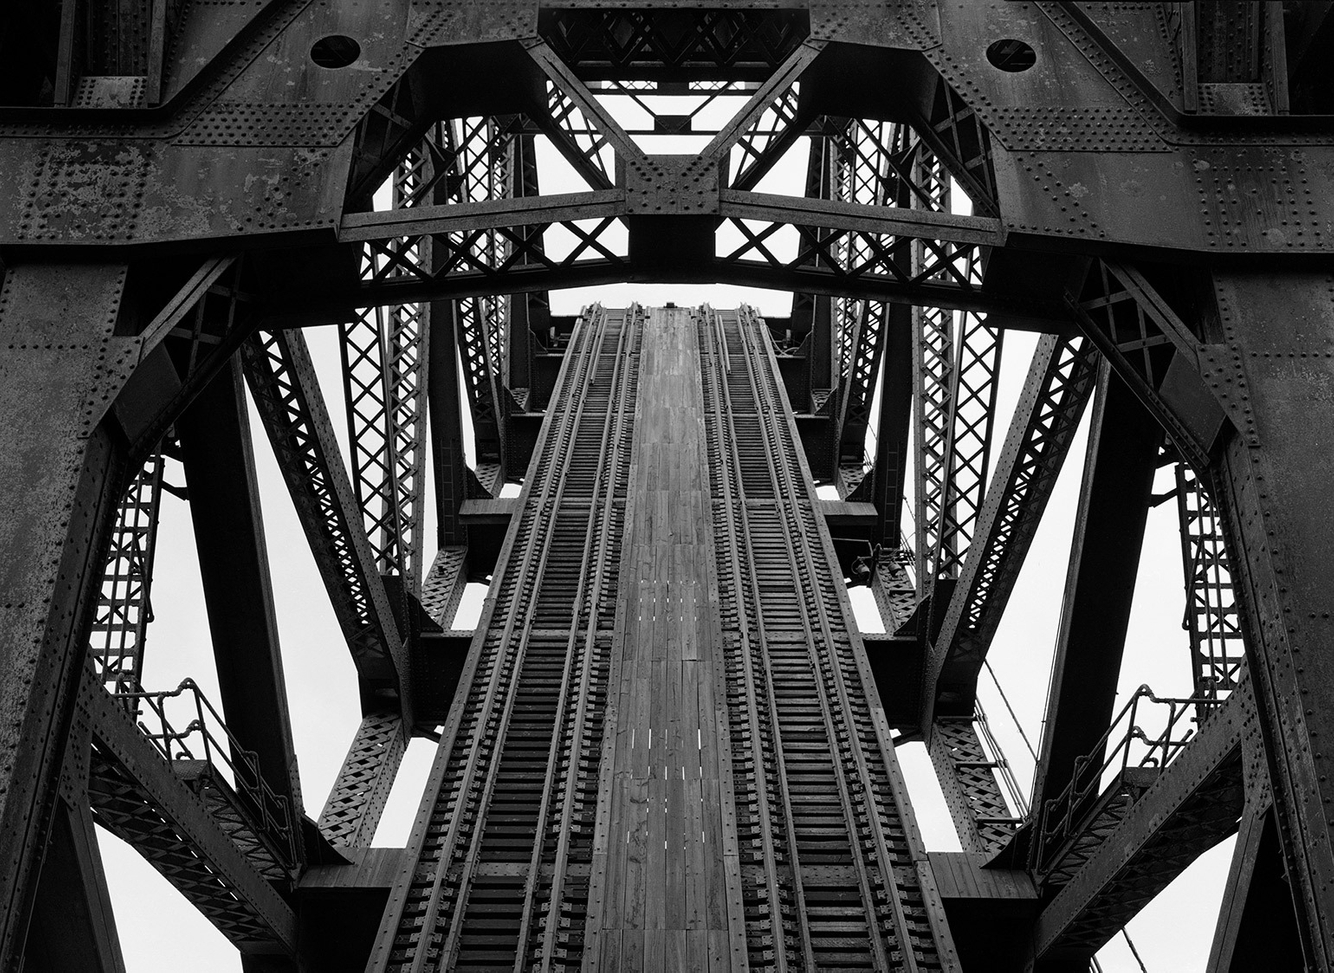 Tracks and Framework, Raised Position, 18th St. Railroad Bridge, Chicago 2001